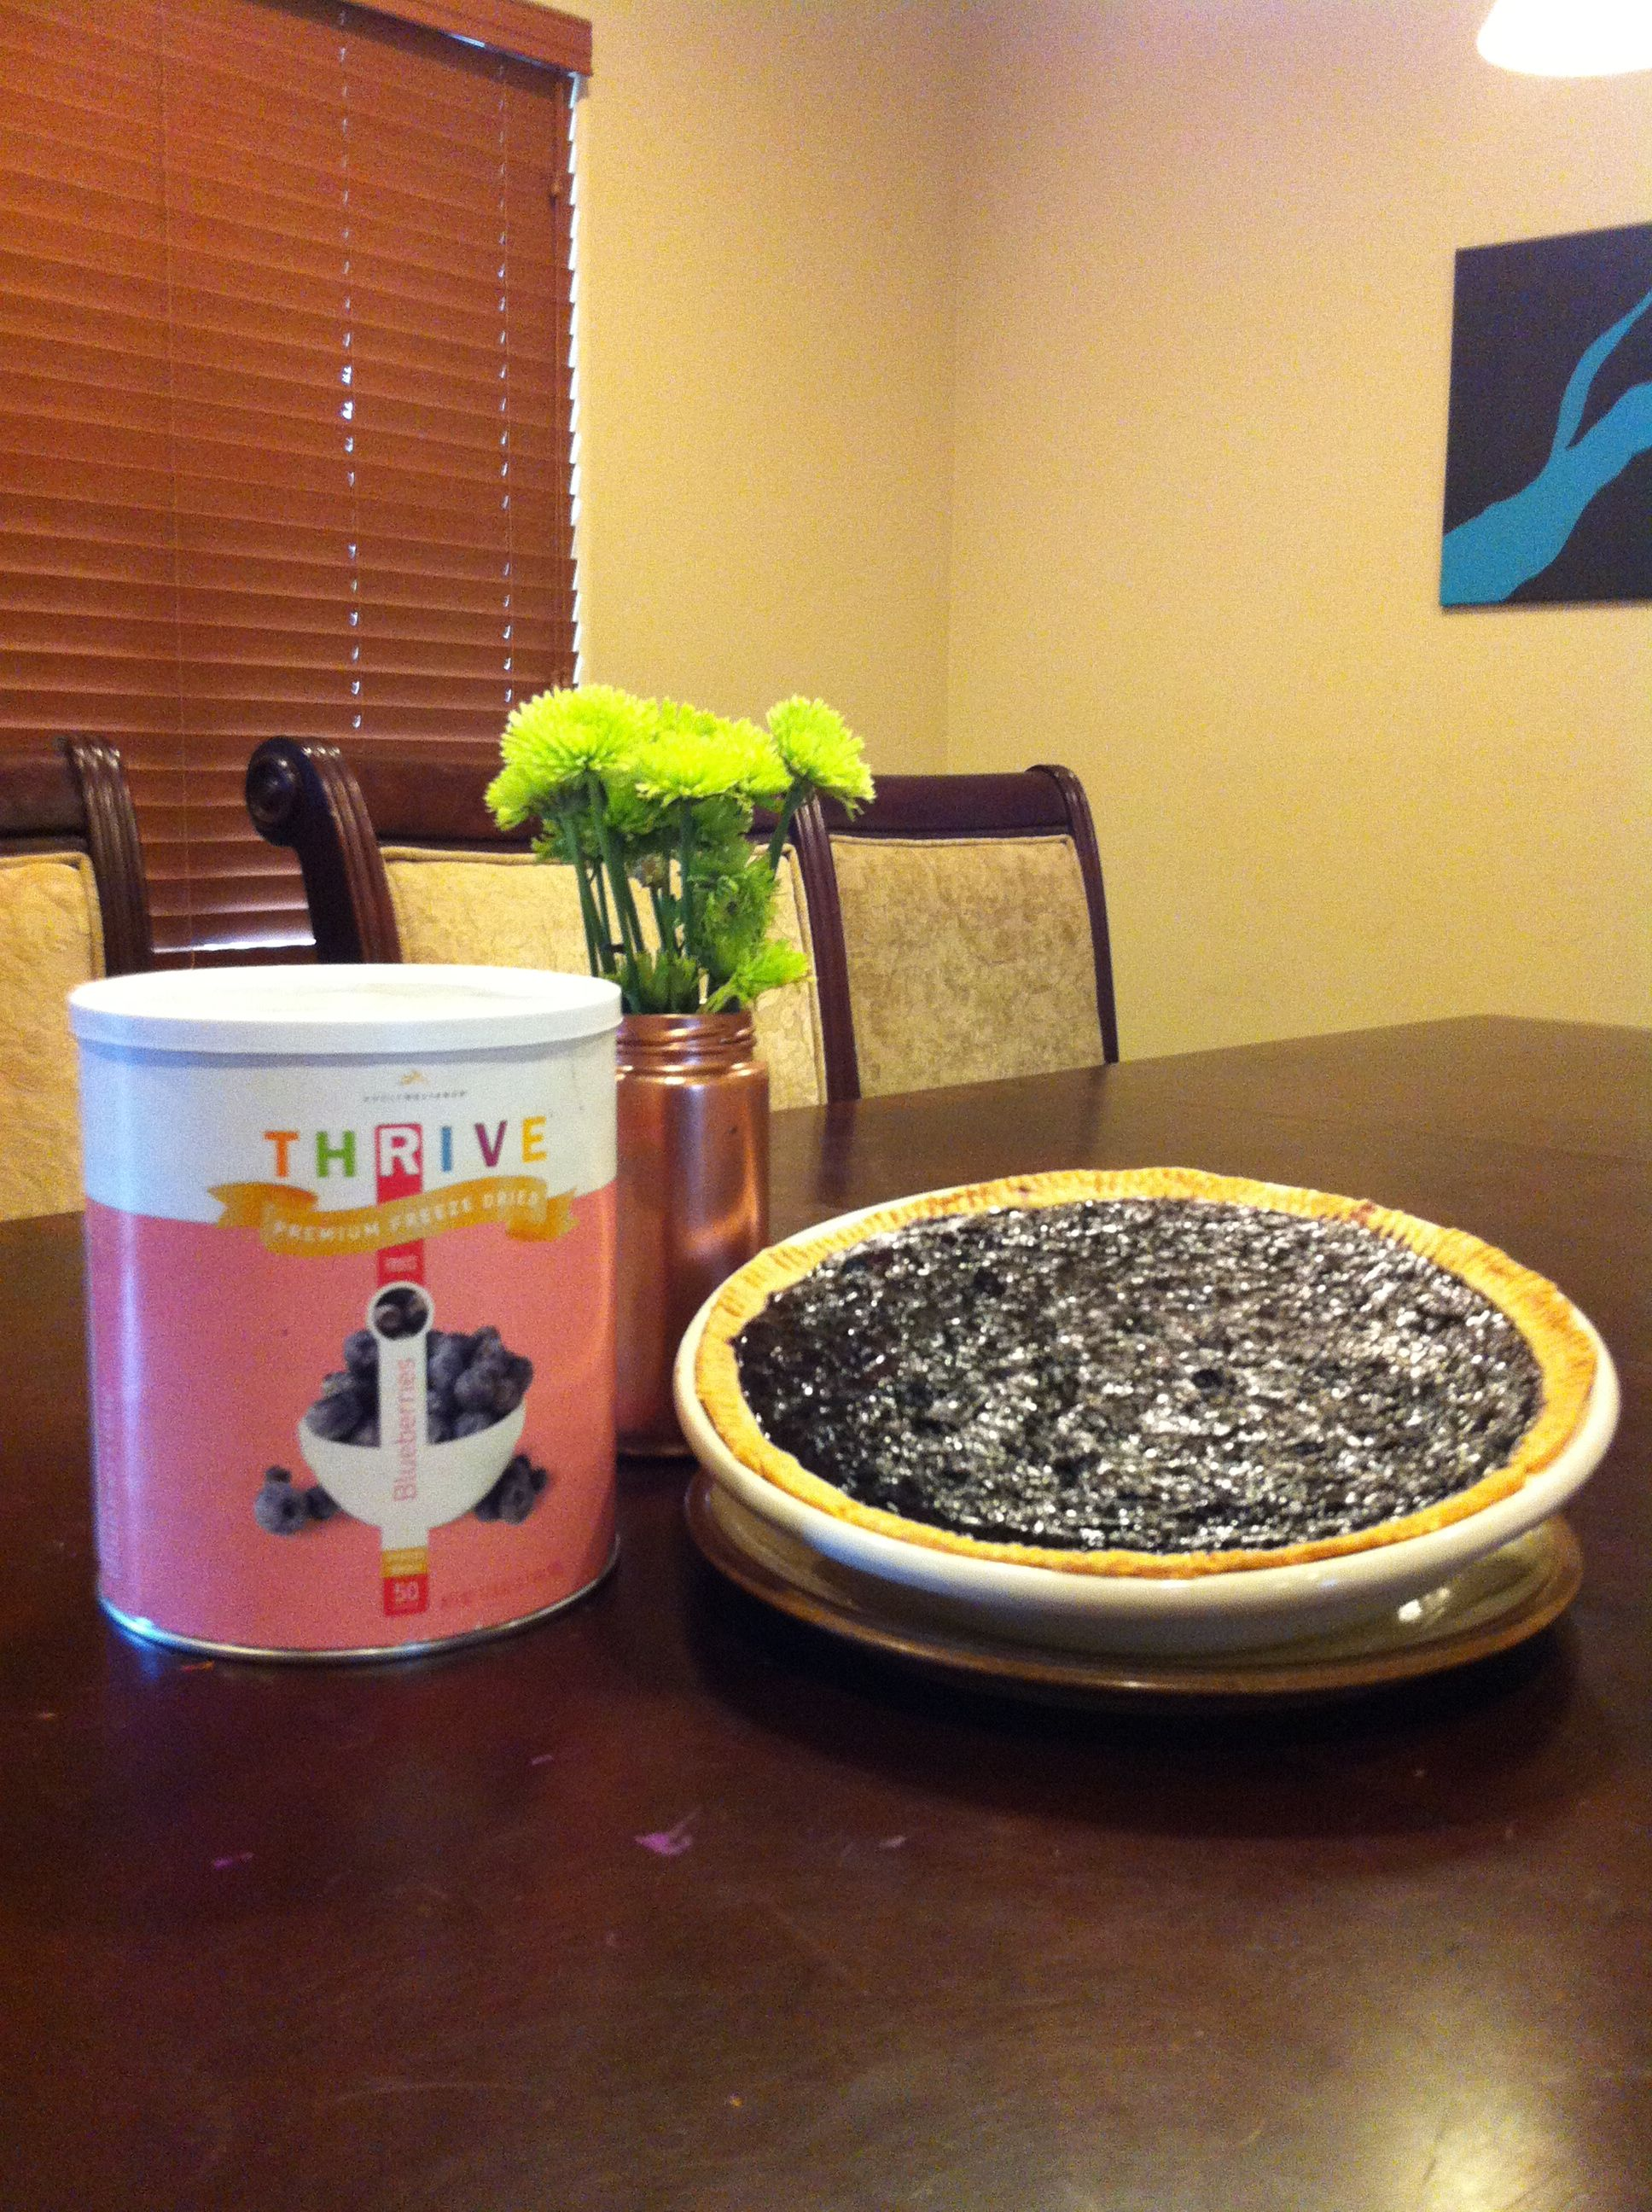 Surprisingly delicious blueberry pie from Thrive freeze dried blueberries! Half 10# can of dried blueberries, 3-4 cups water, and at least 1 cup sugar, more if you want it sweeter. Bring to a boil and then let simmer until it thickens. 30-45 mins depending on how much water you added. If it looks too runny let it simmer longer. Will reduce to about half.  Pour into uncooked pie crust, I like Pillsbury. Cook 350 for 40 mins or until set.